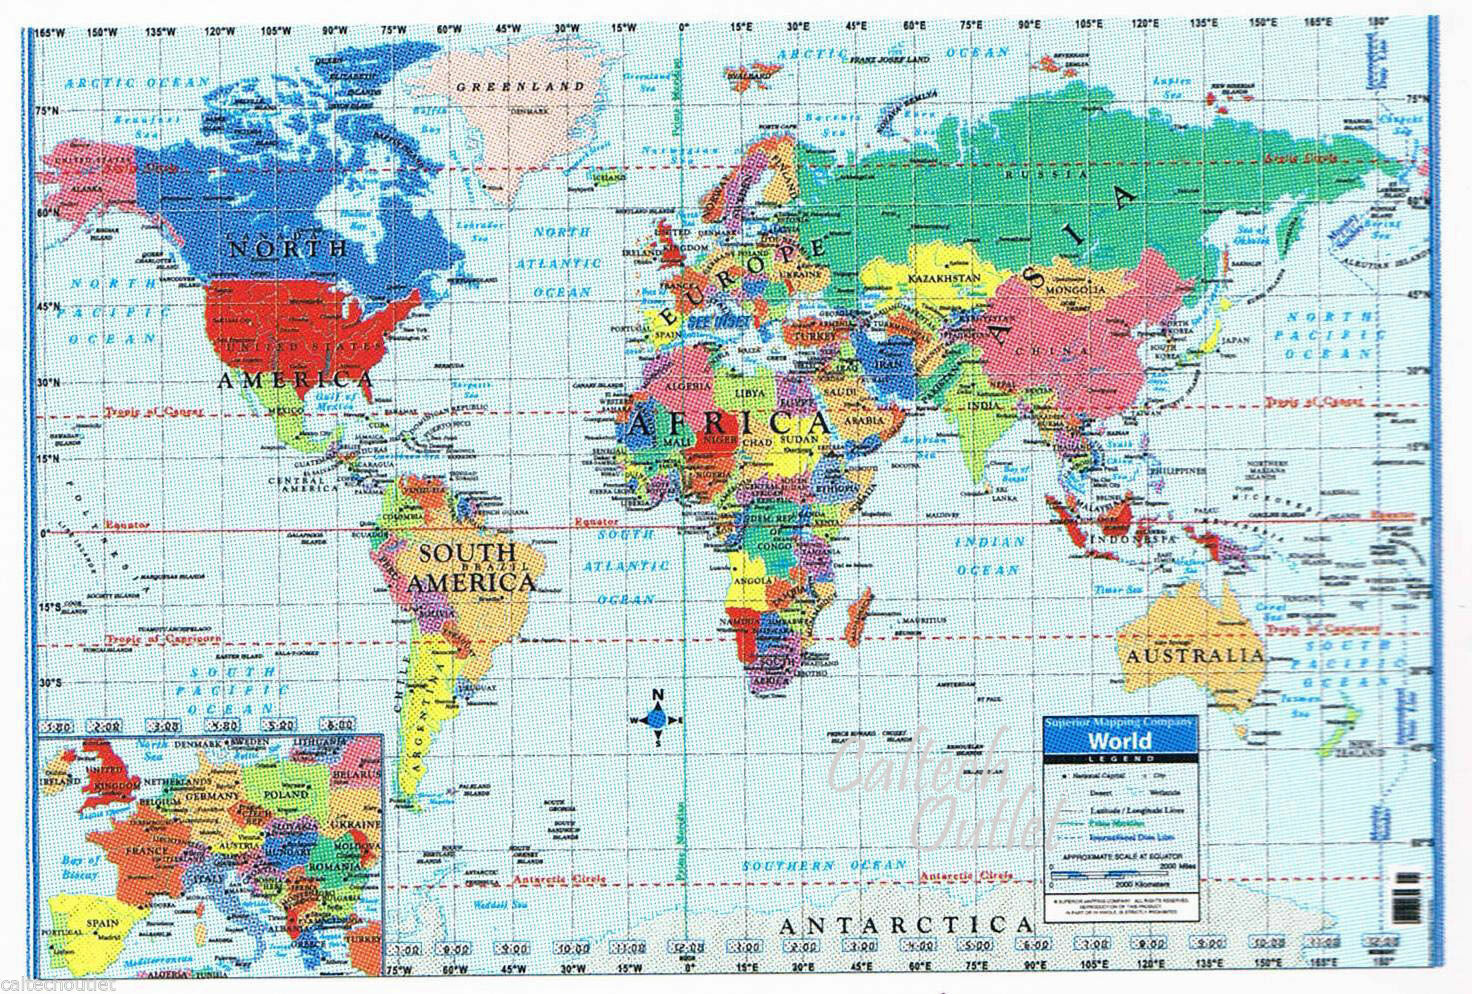 World Map Poster Size Wall Decoration Large Map of The World